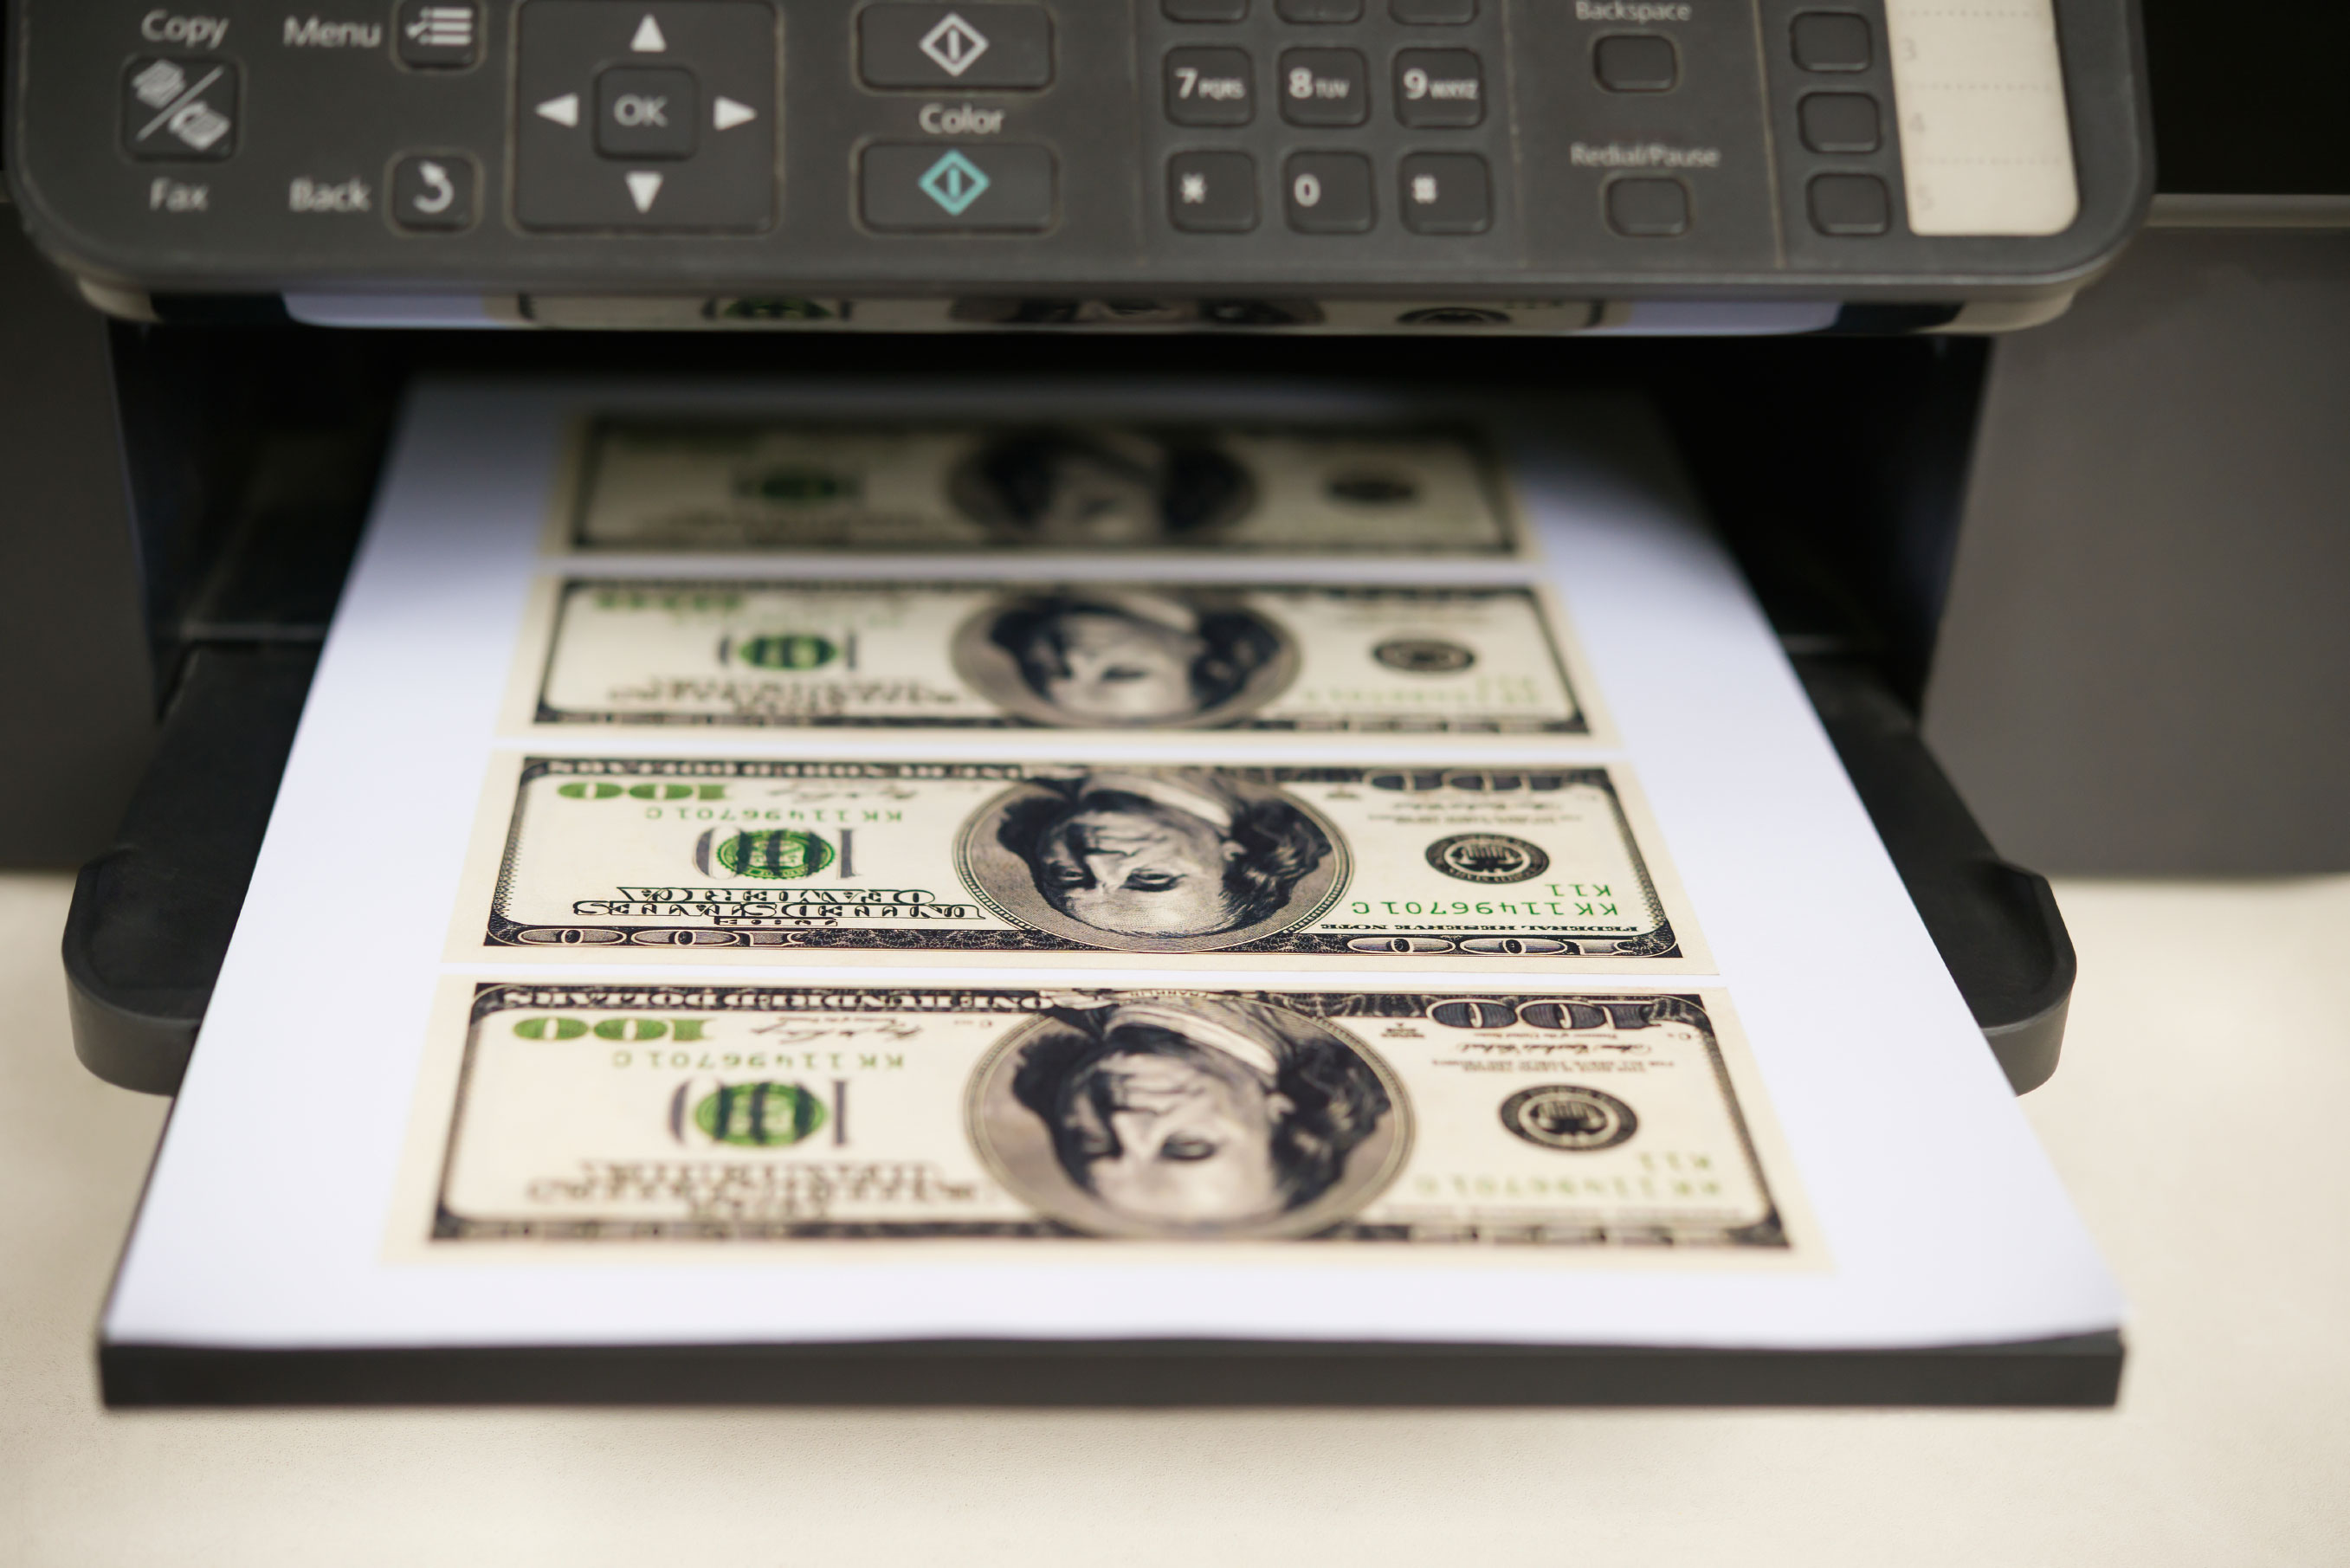 10 Ways to Save Money on Printing | HowStuffWorks